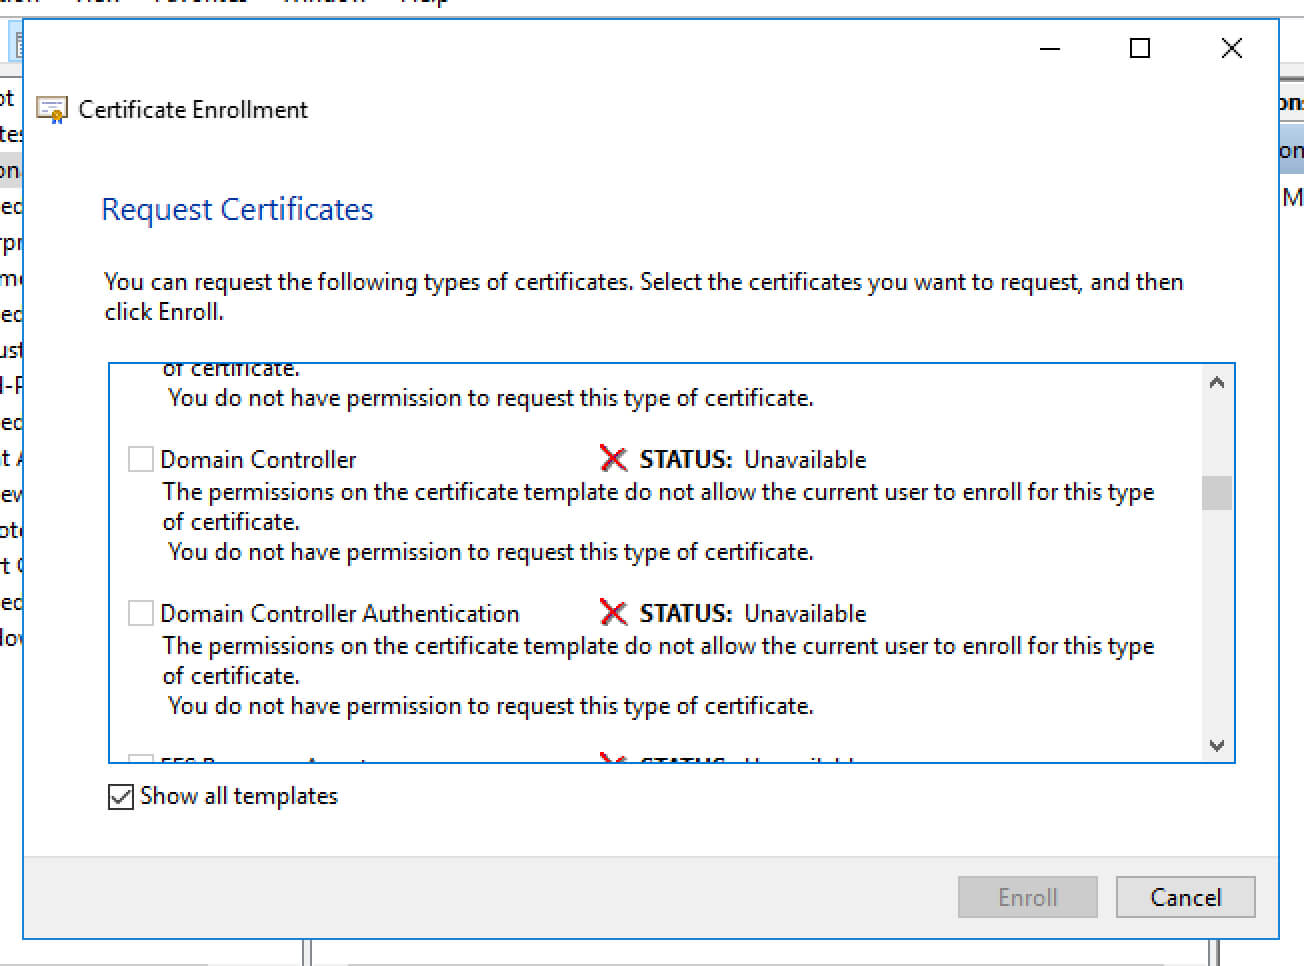 Unable To Request New Certificate From Nps Server For Domain Controller Certificate Template